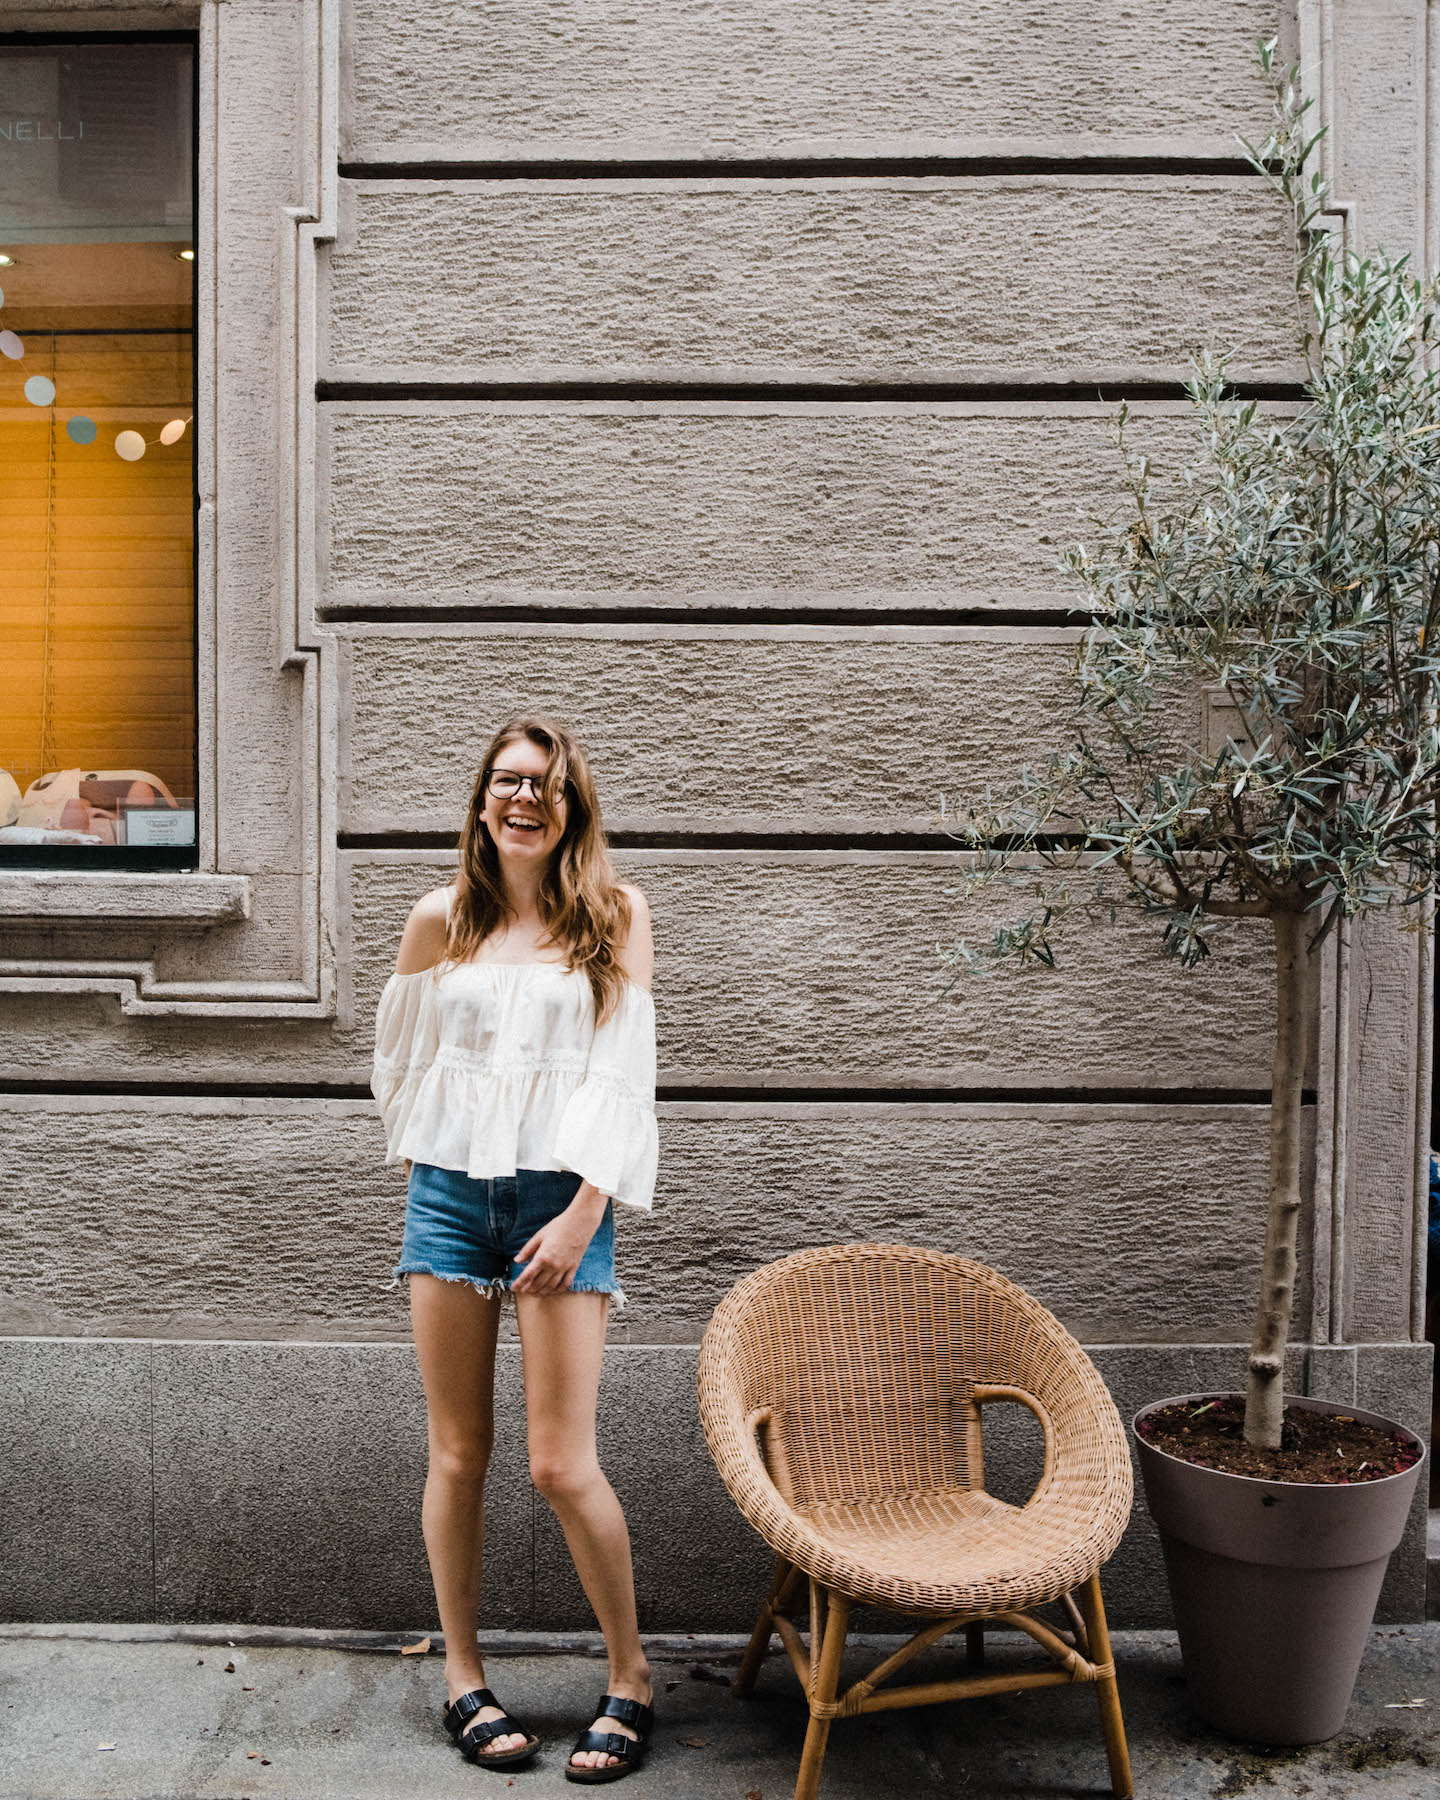 Wide portrait photo of a Rhianna May, an Italian Destination Wedding Photographer, smiling and standing in front of a typical Milanese facade in Brera.